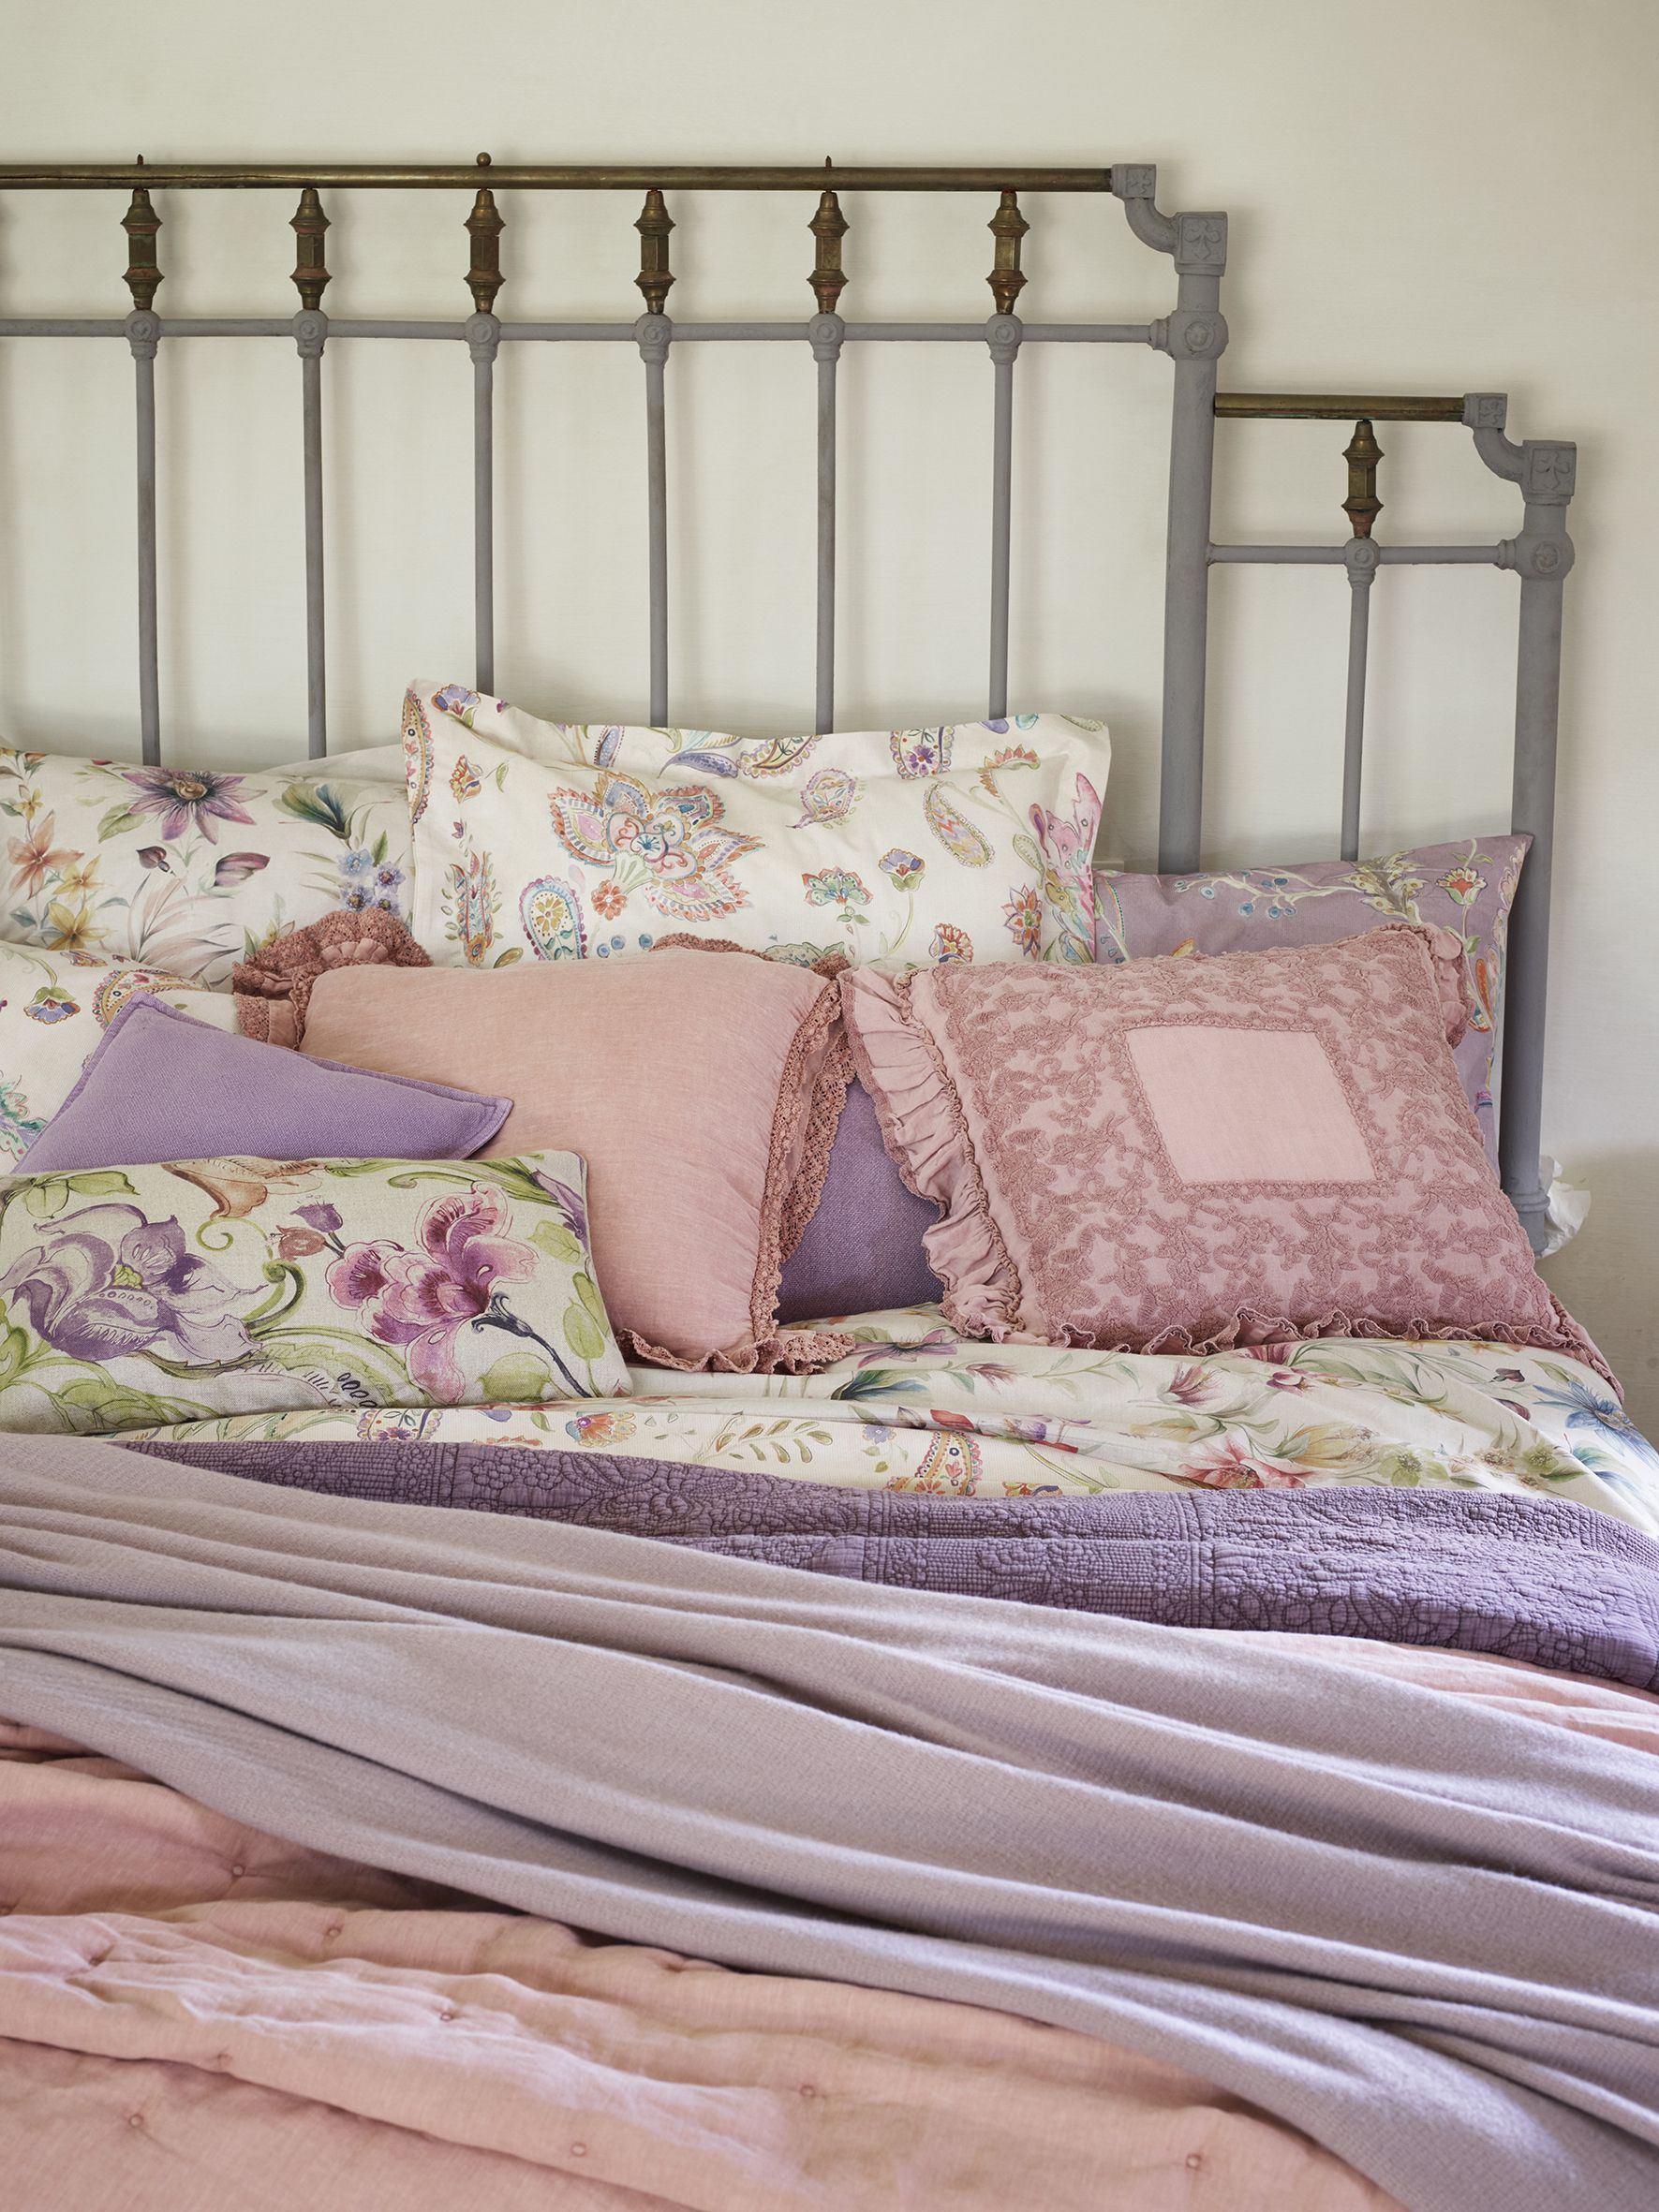 Bedroom Ideas - BOTANICAL COLLECTION